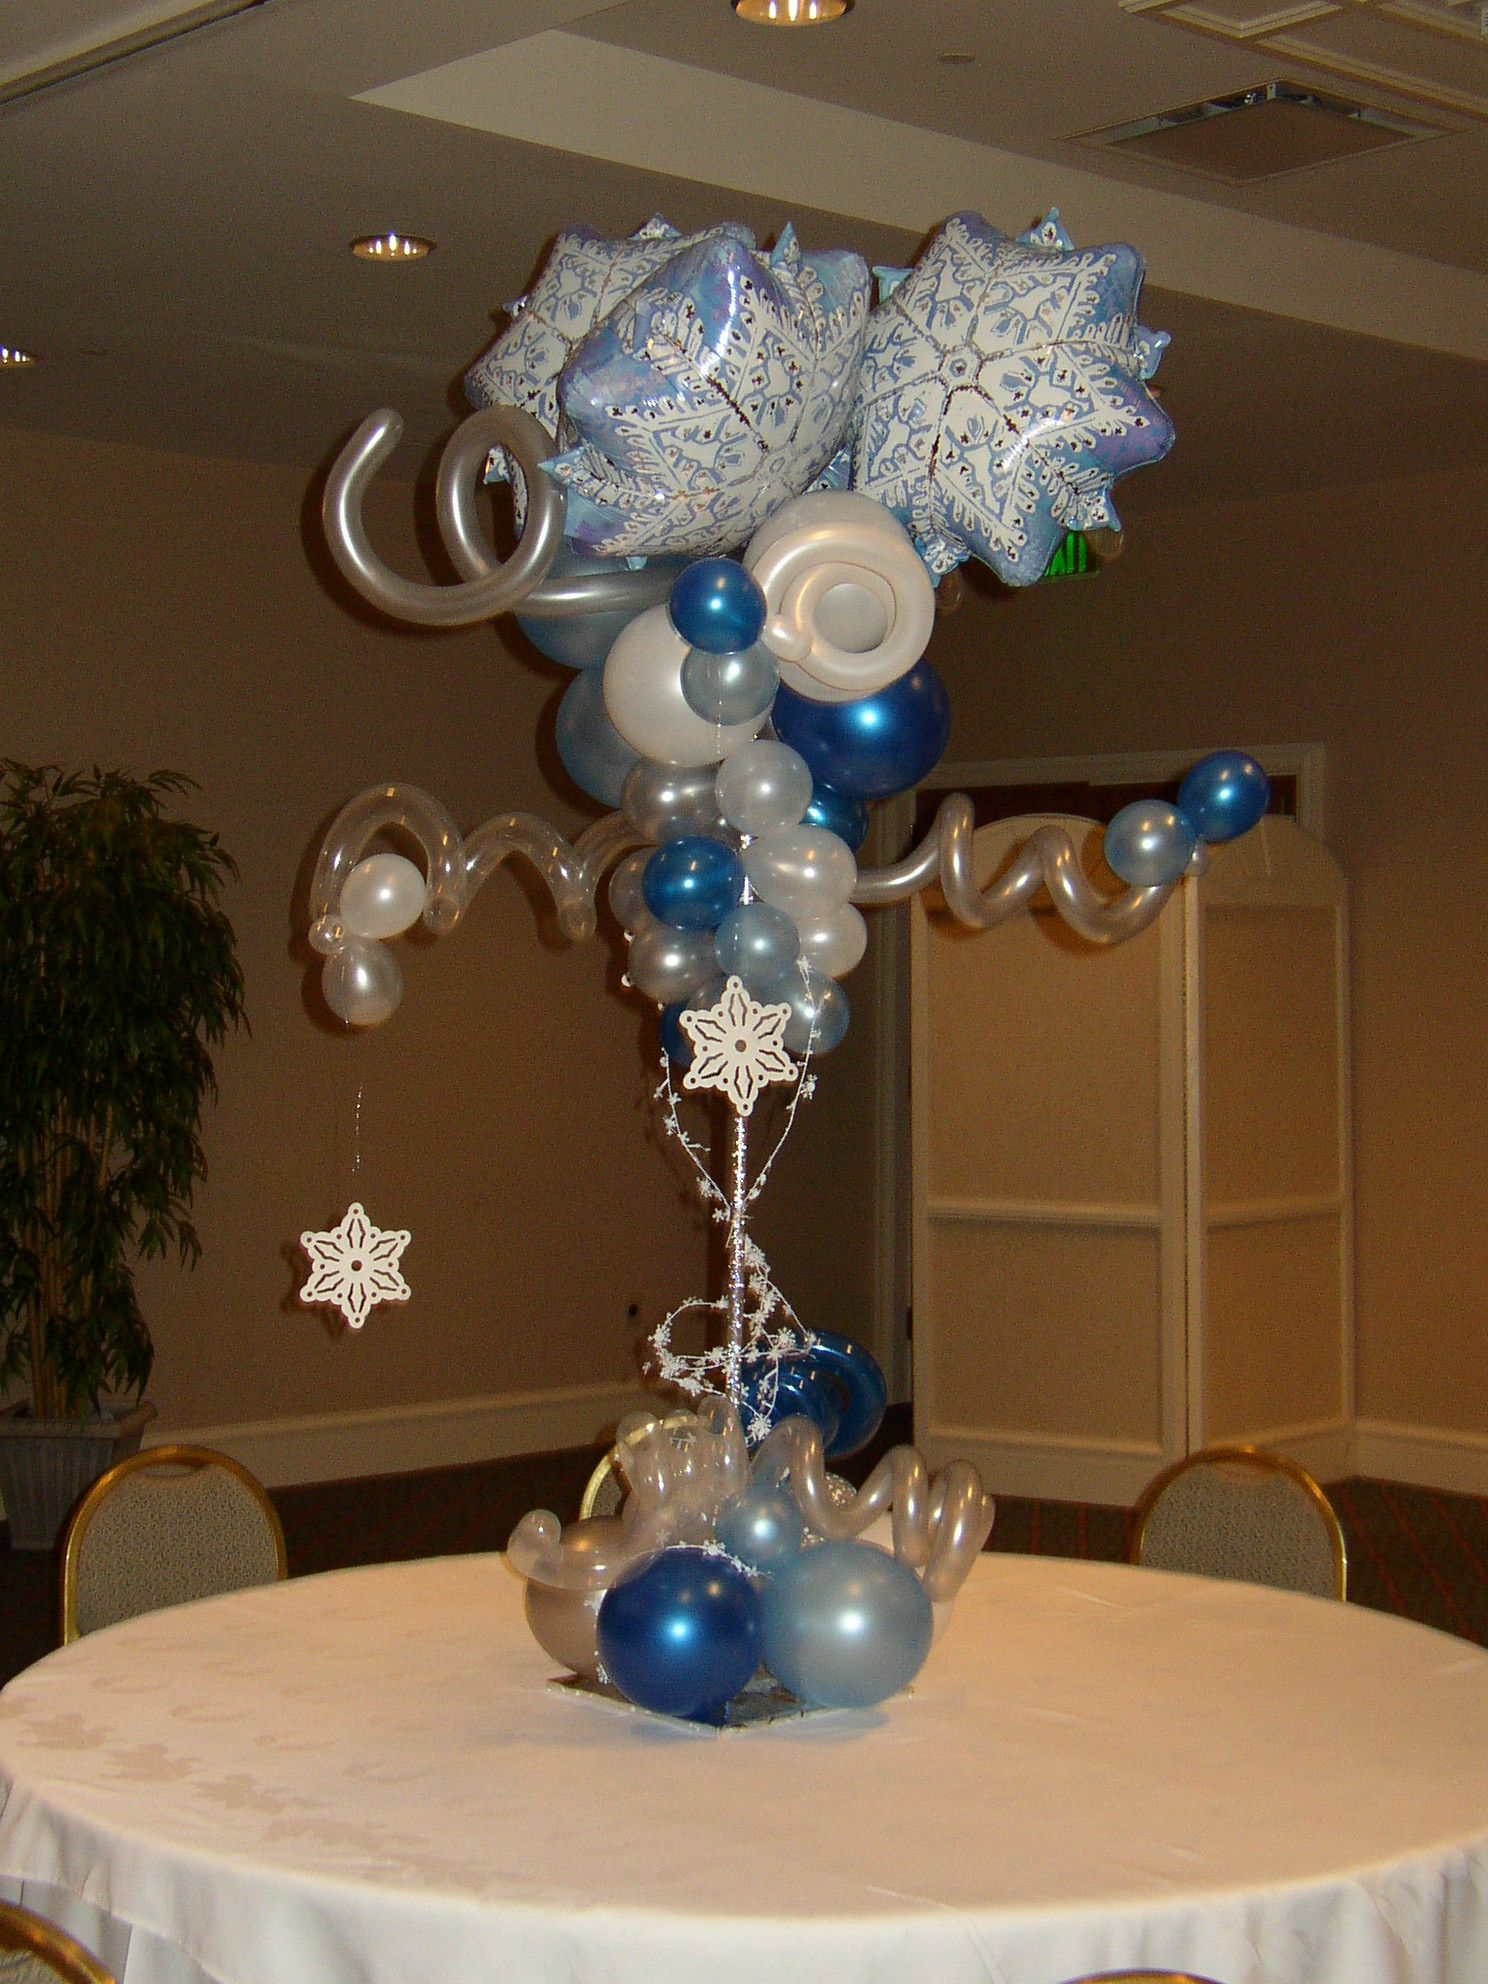 Snowflake winter wonderland theme centerpieces bar